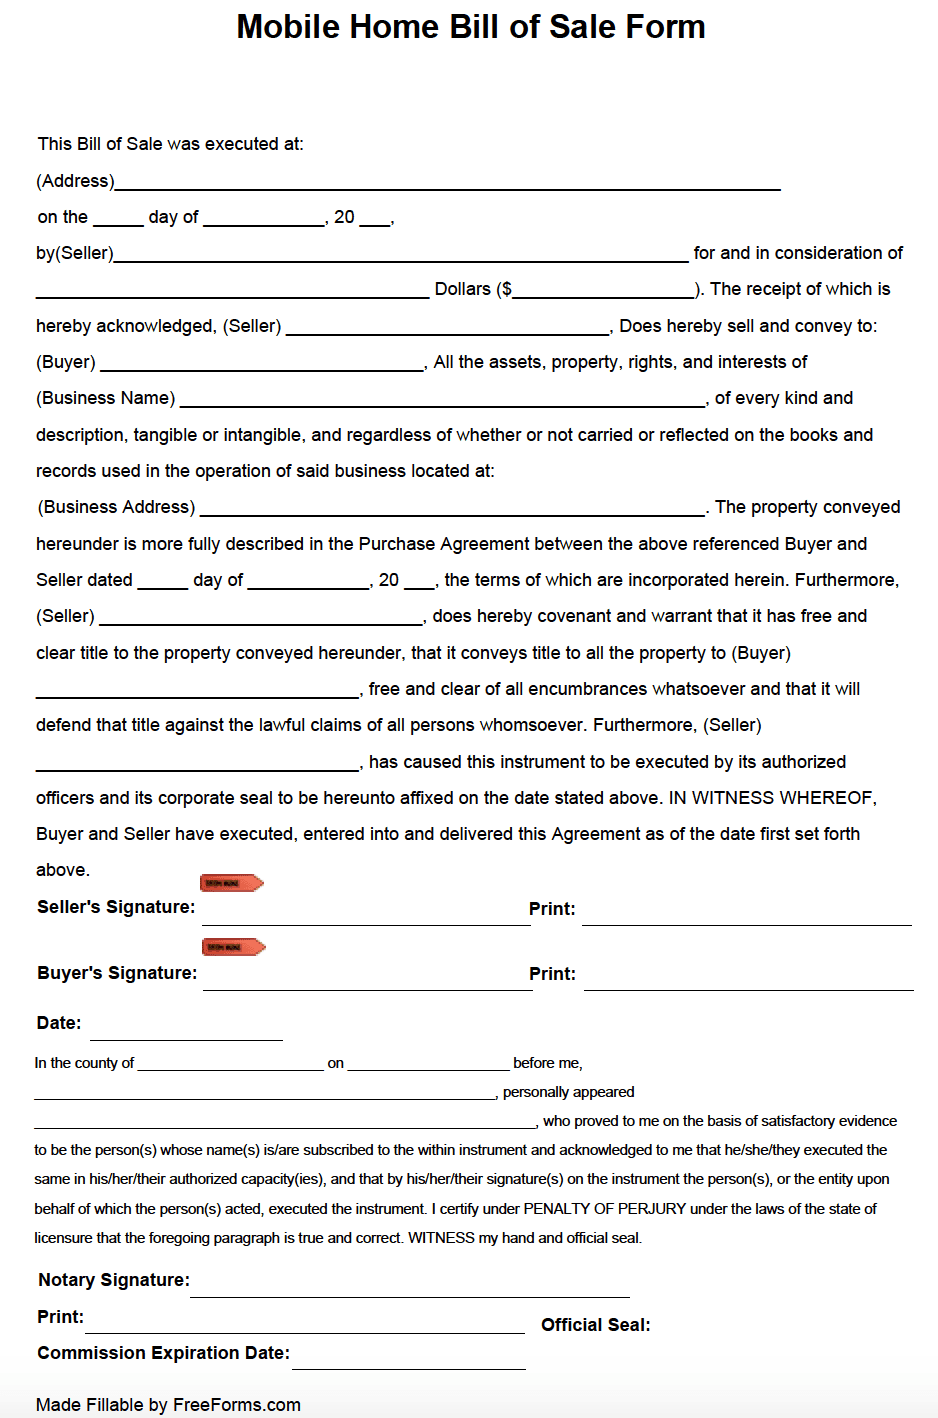 Free Business Bill Of Sale Form (Purchase Agreement) | Pdf